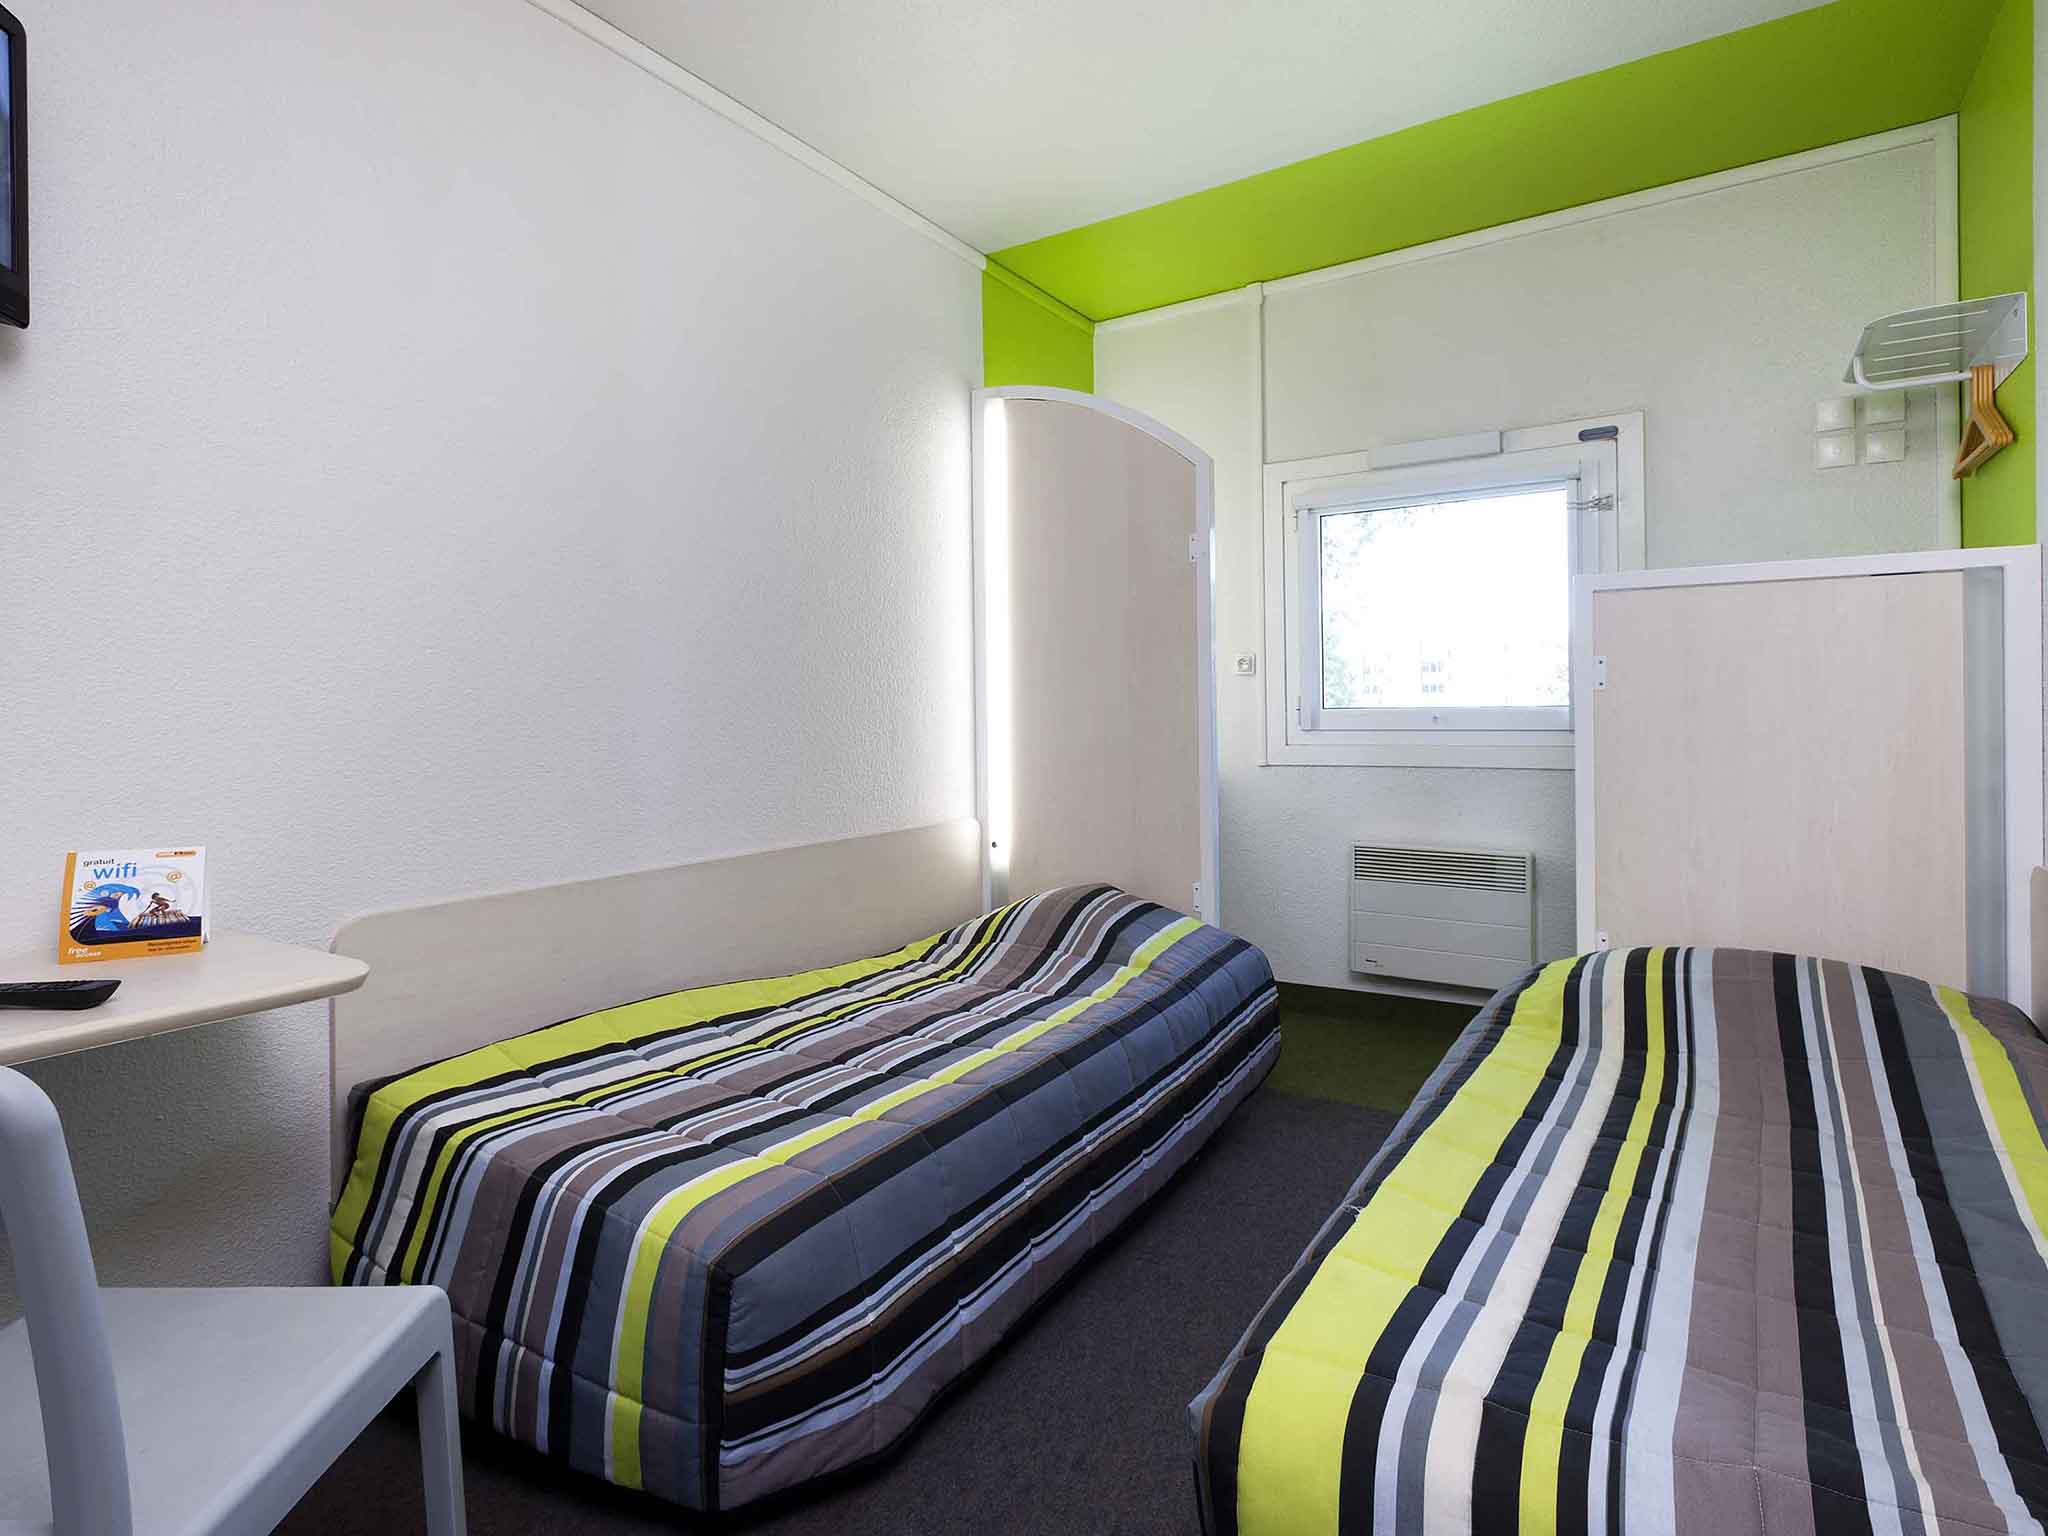 Hotell – hotelF1 Angers Ouest Beaucouzé